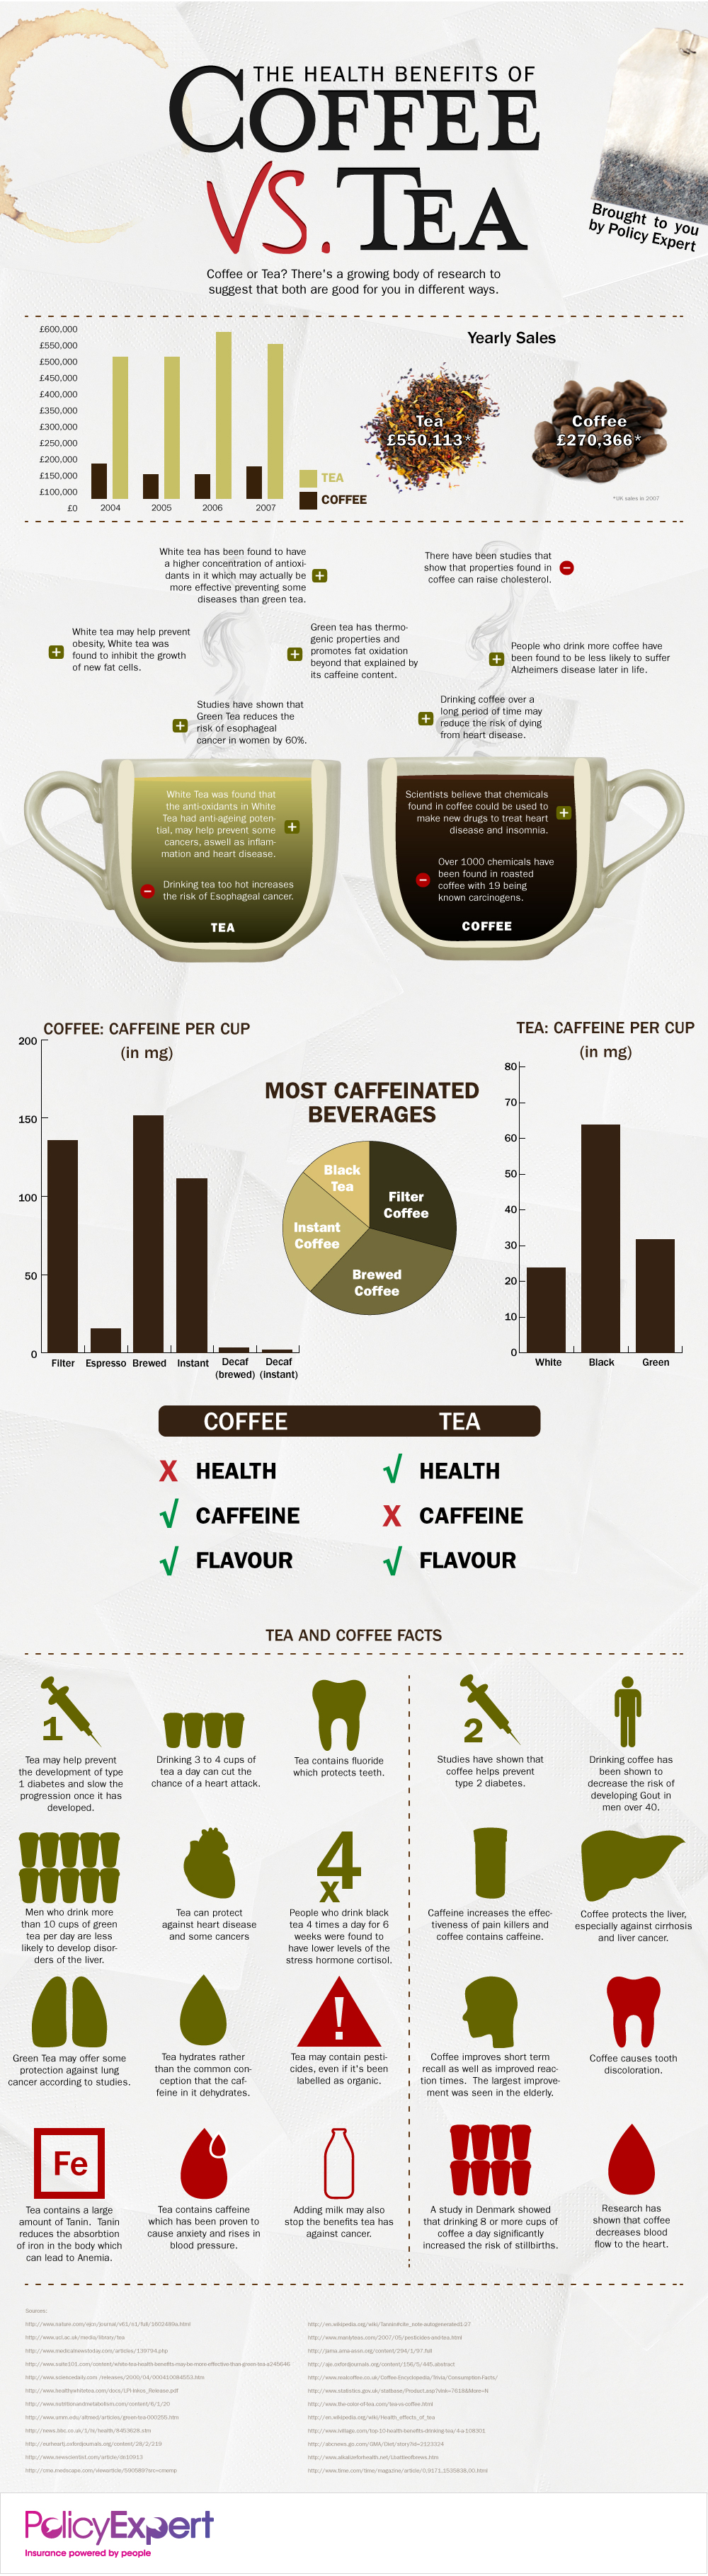 Tea Vs. Coffee: Which One Is Better?